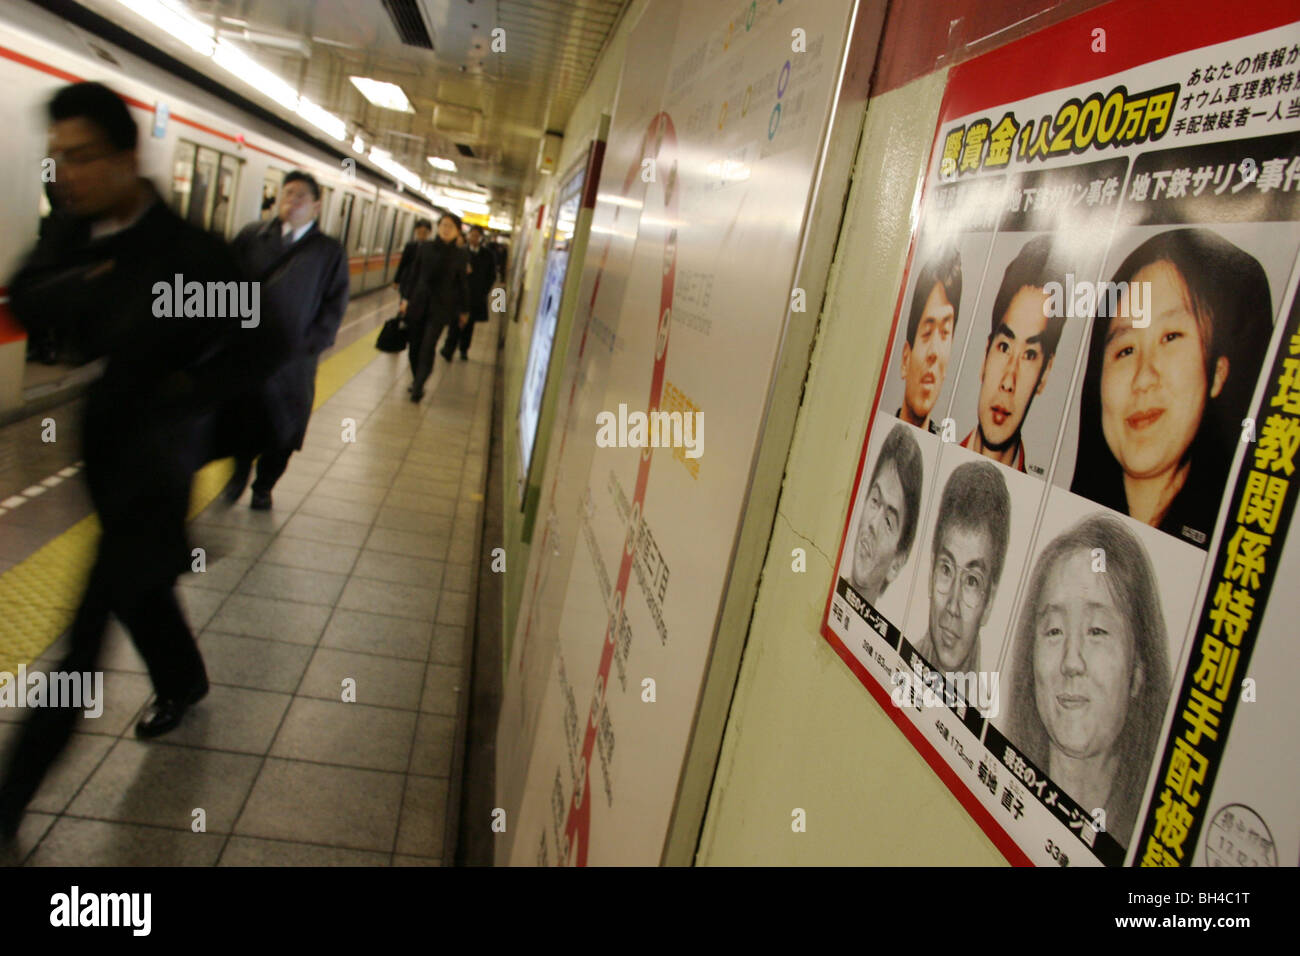 Police 'wanted' poster for members of Aum Shinrikyo Supreme Truth Cult, in Tokyo, Japan - Stock Image